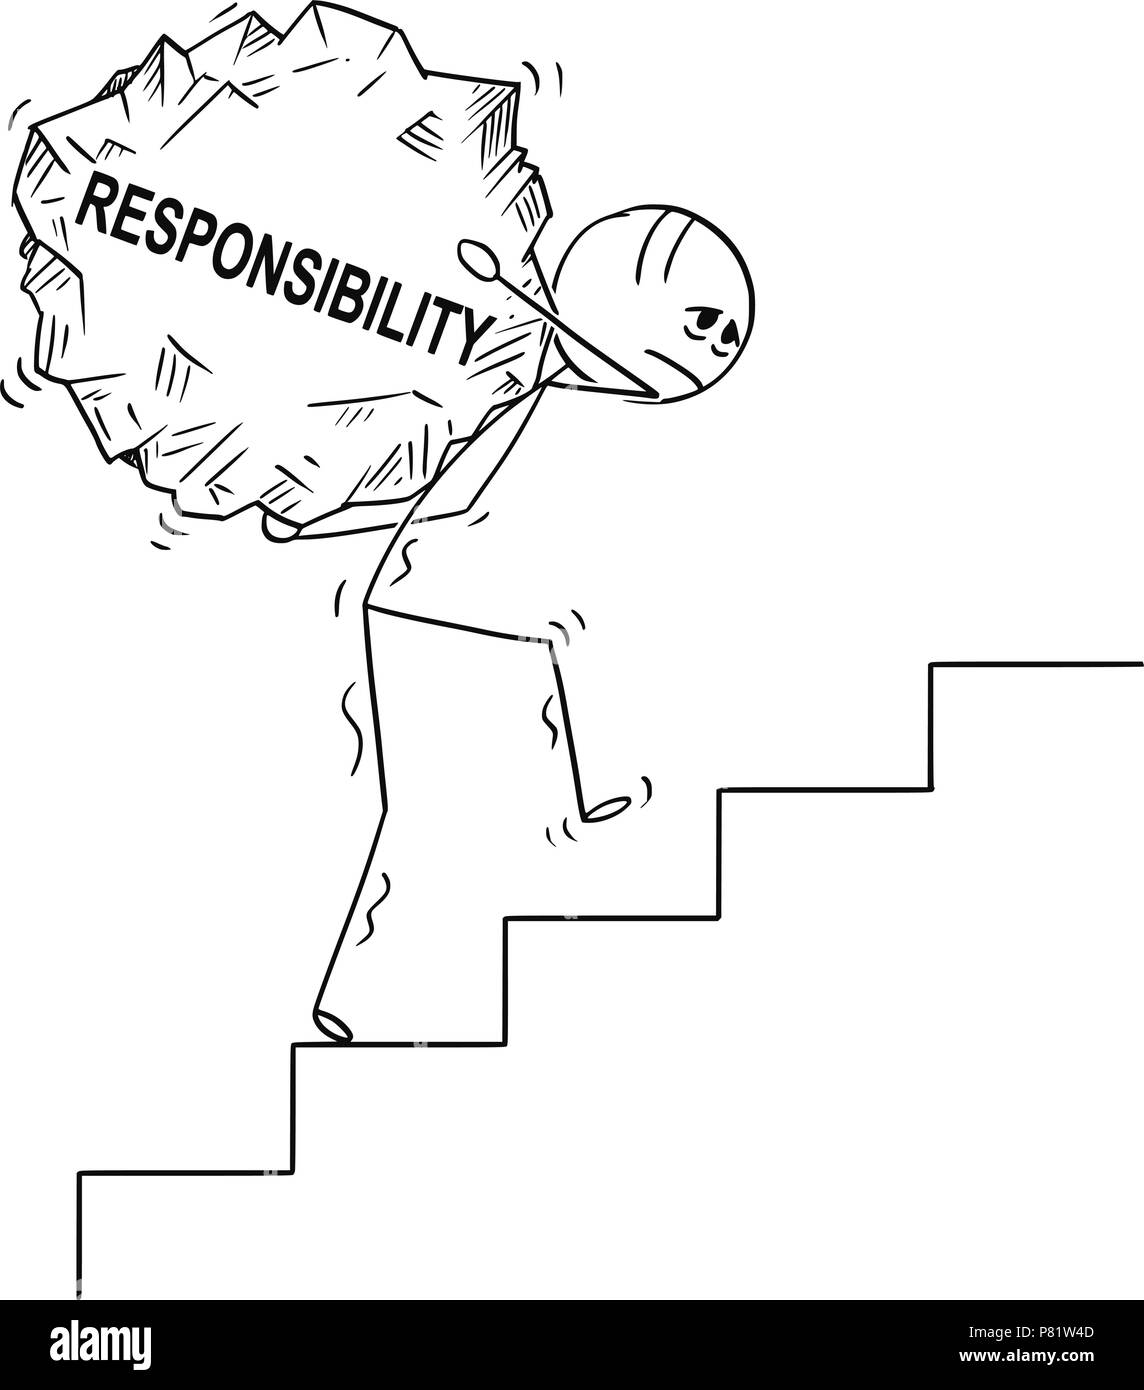 Cartoon of Man Carrying Upstairs Big Piece of Rock With Text Responsibility - Stock Image